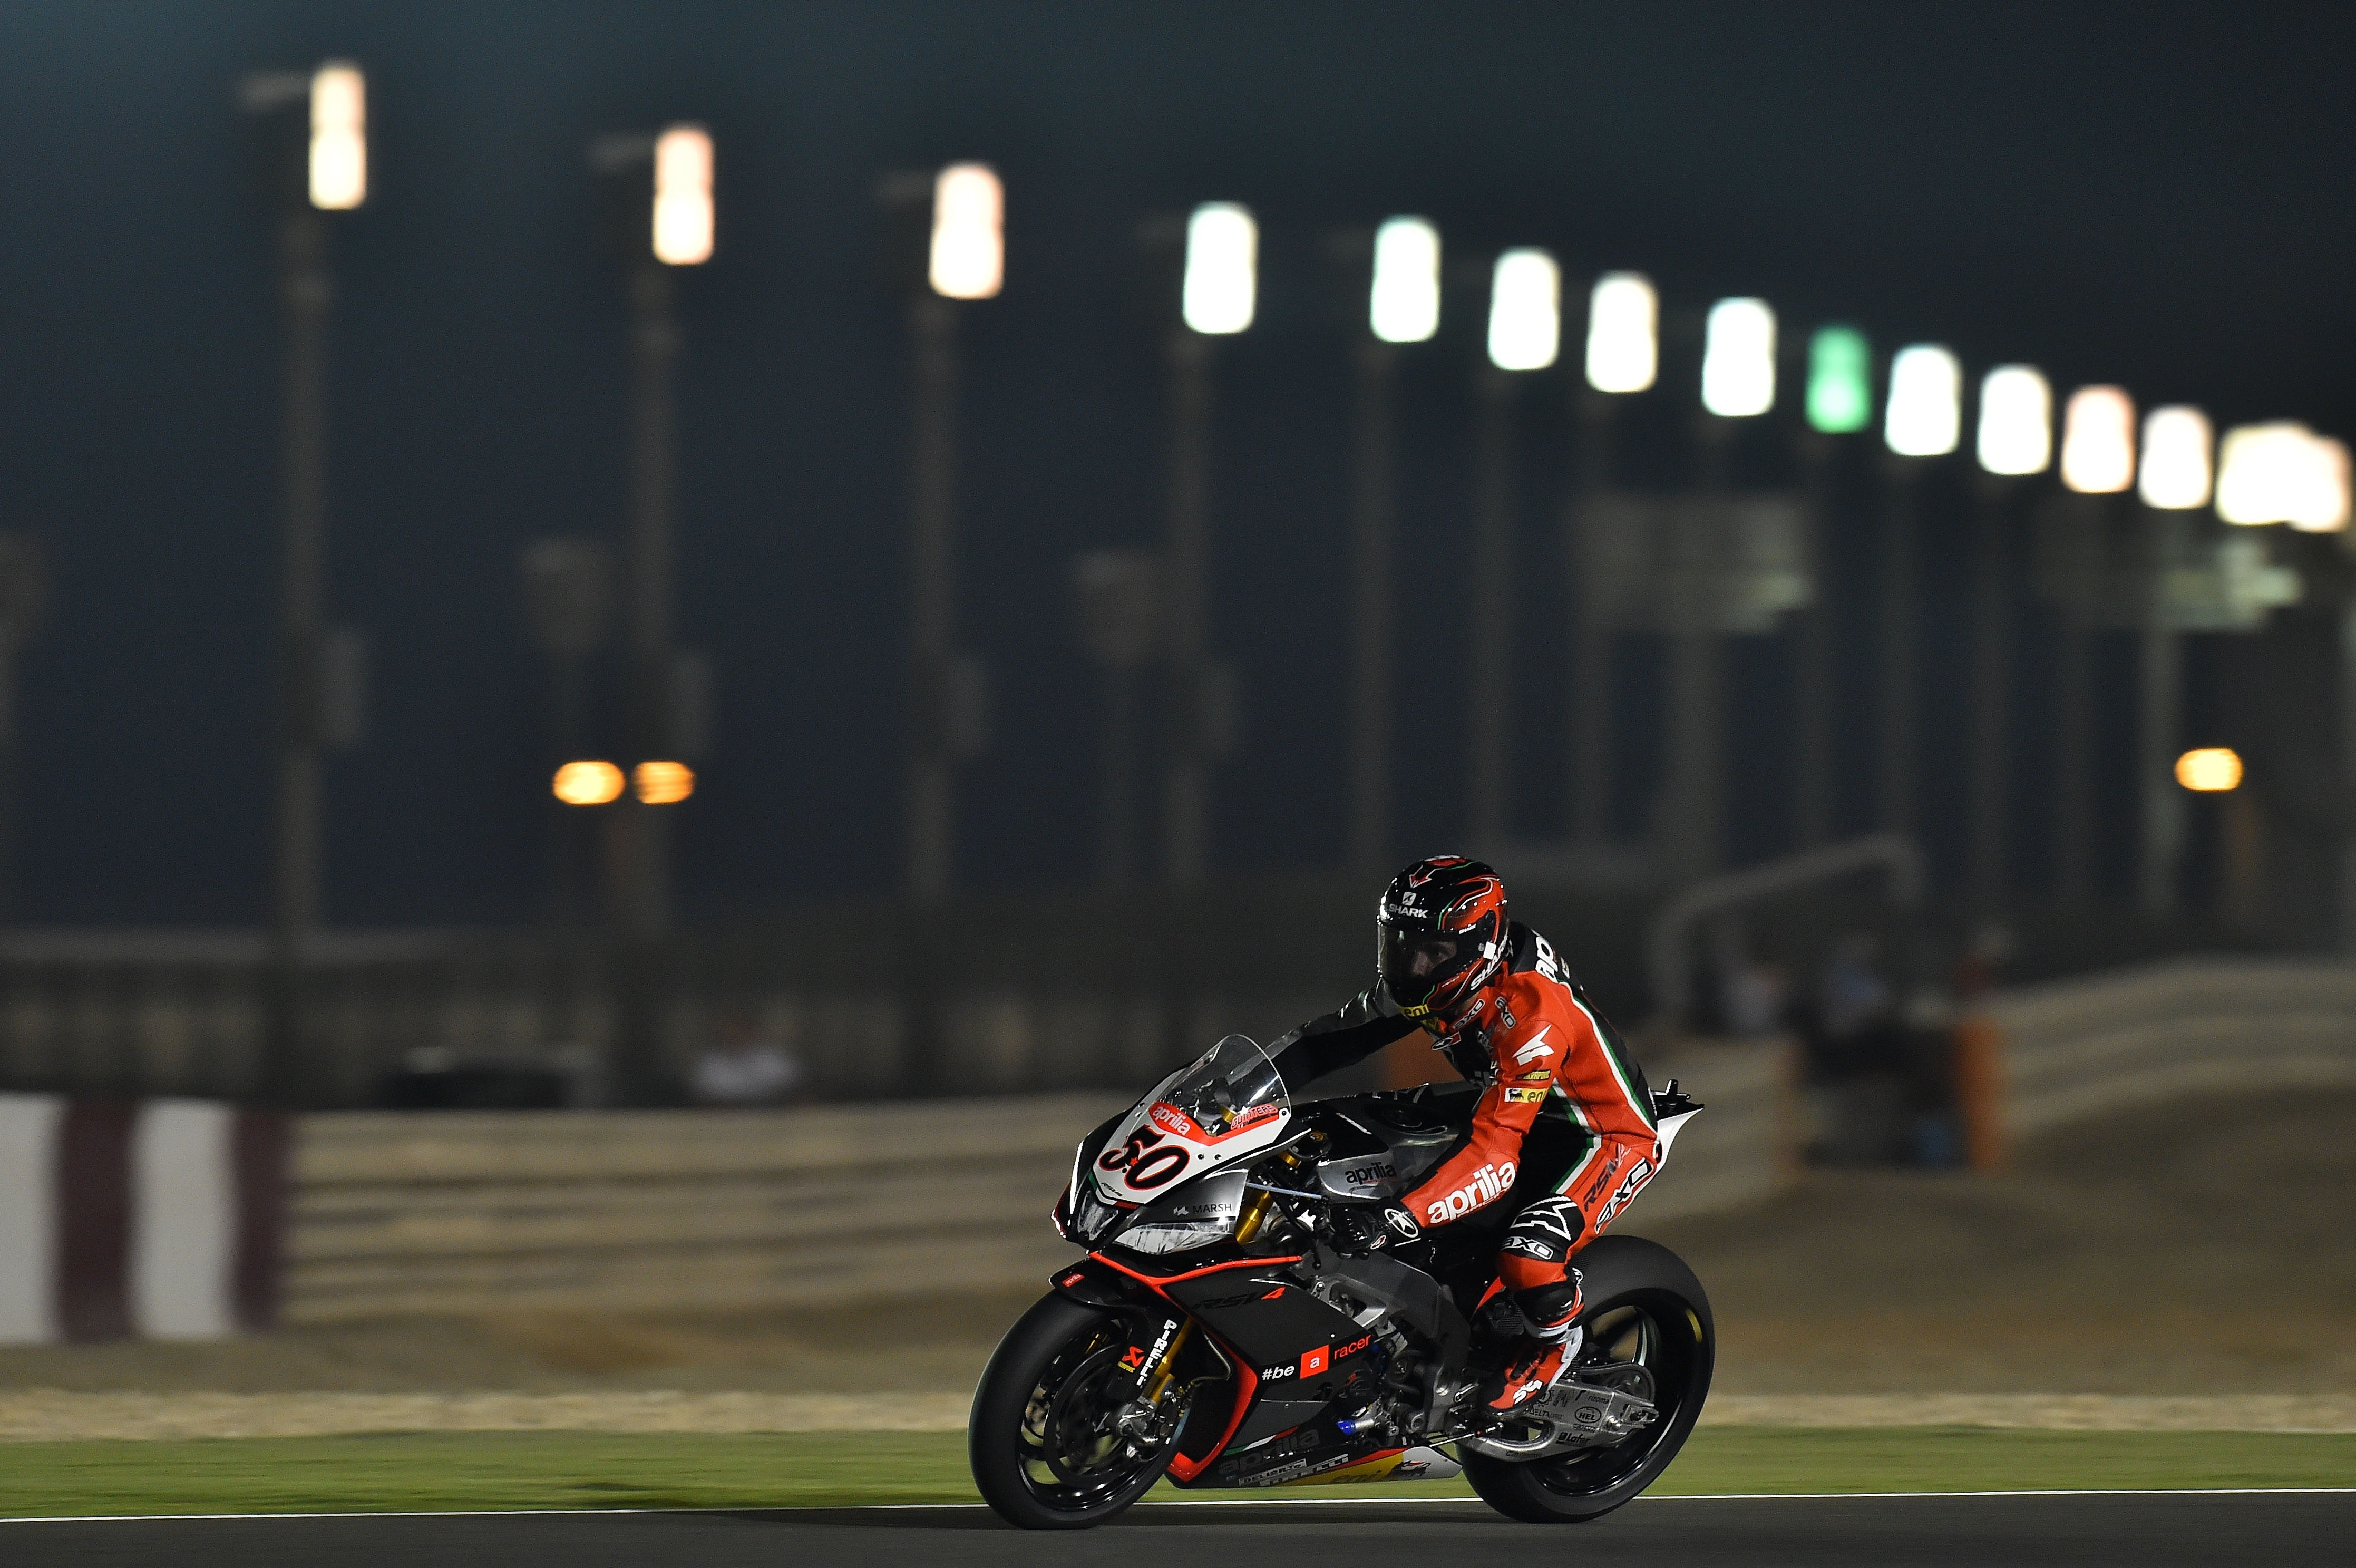 Person riding super bike during night race photo